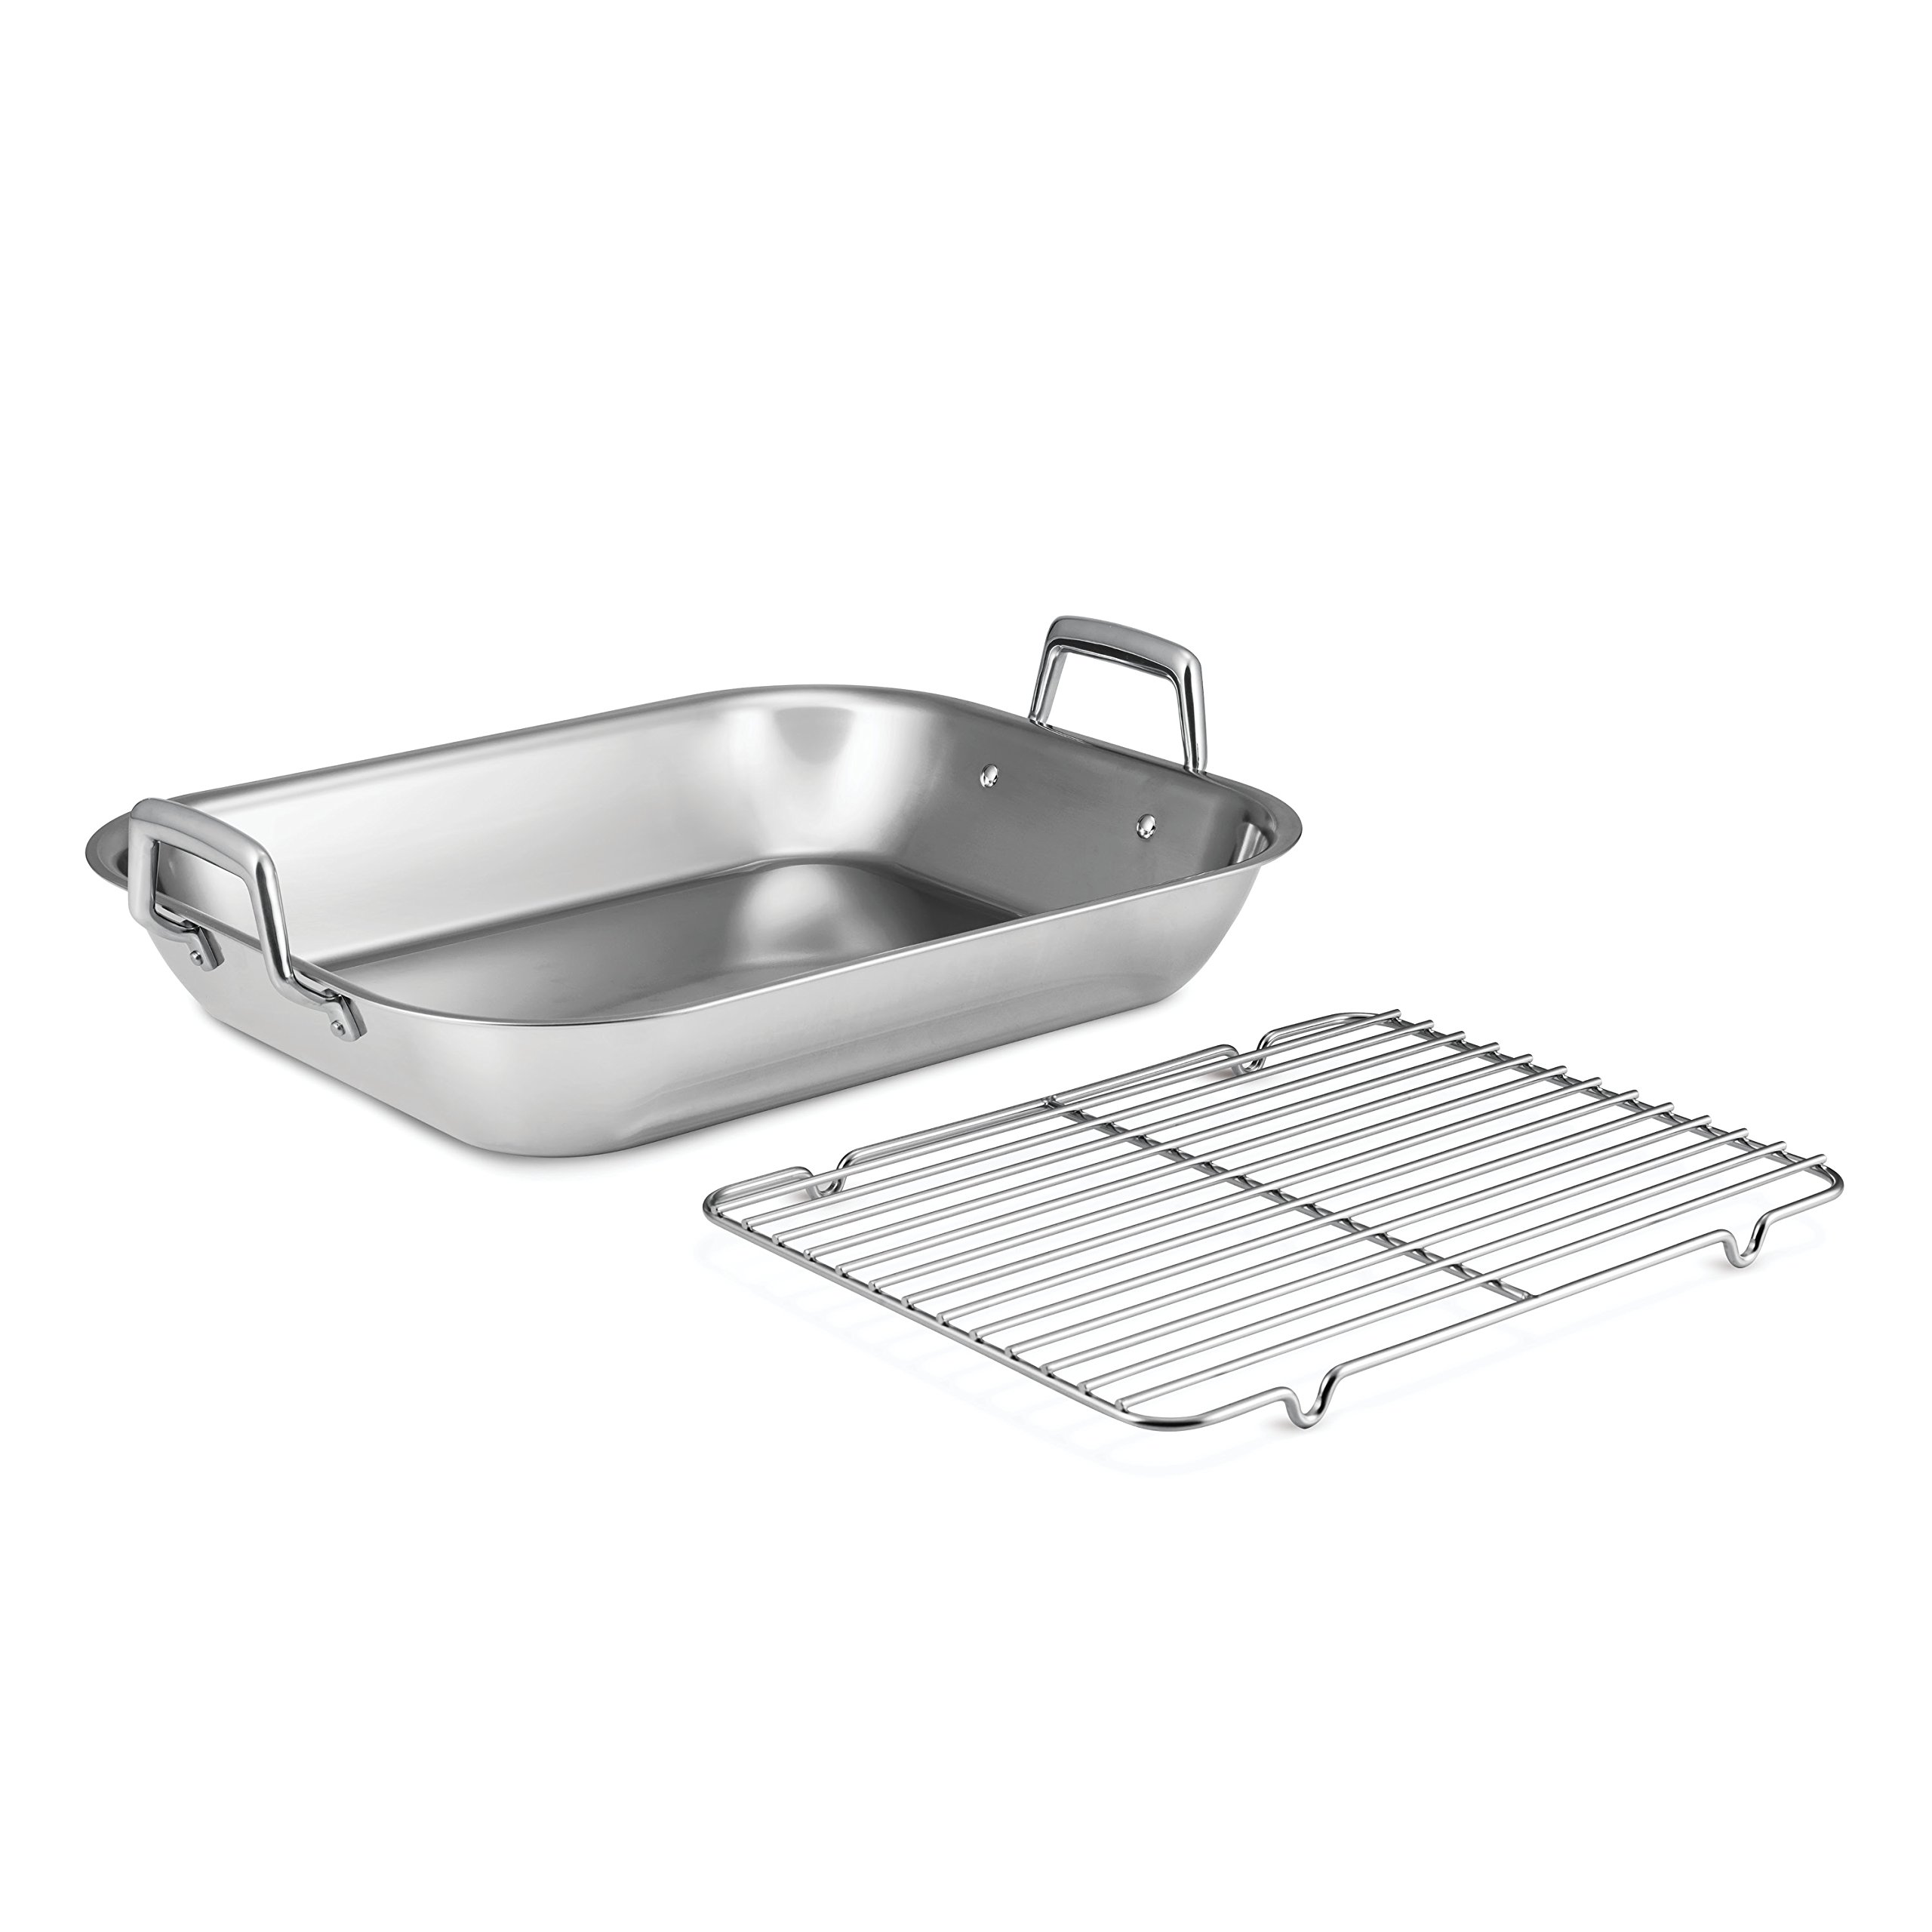 Tramontina 80203/010DS 18.75 inch Roasting Pan 18.75-Inch Stainless Steel